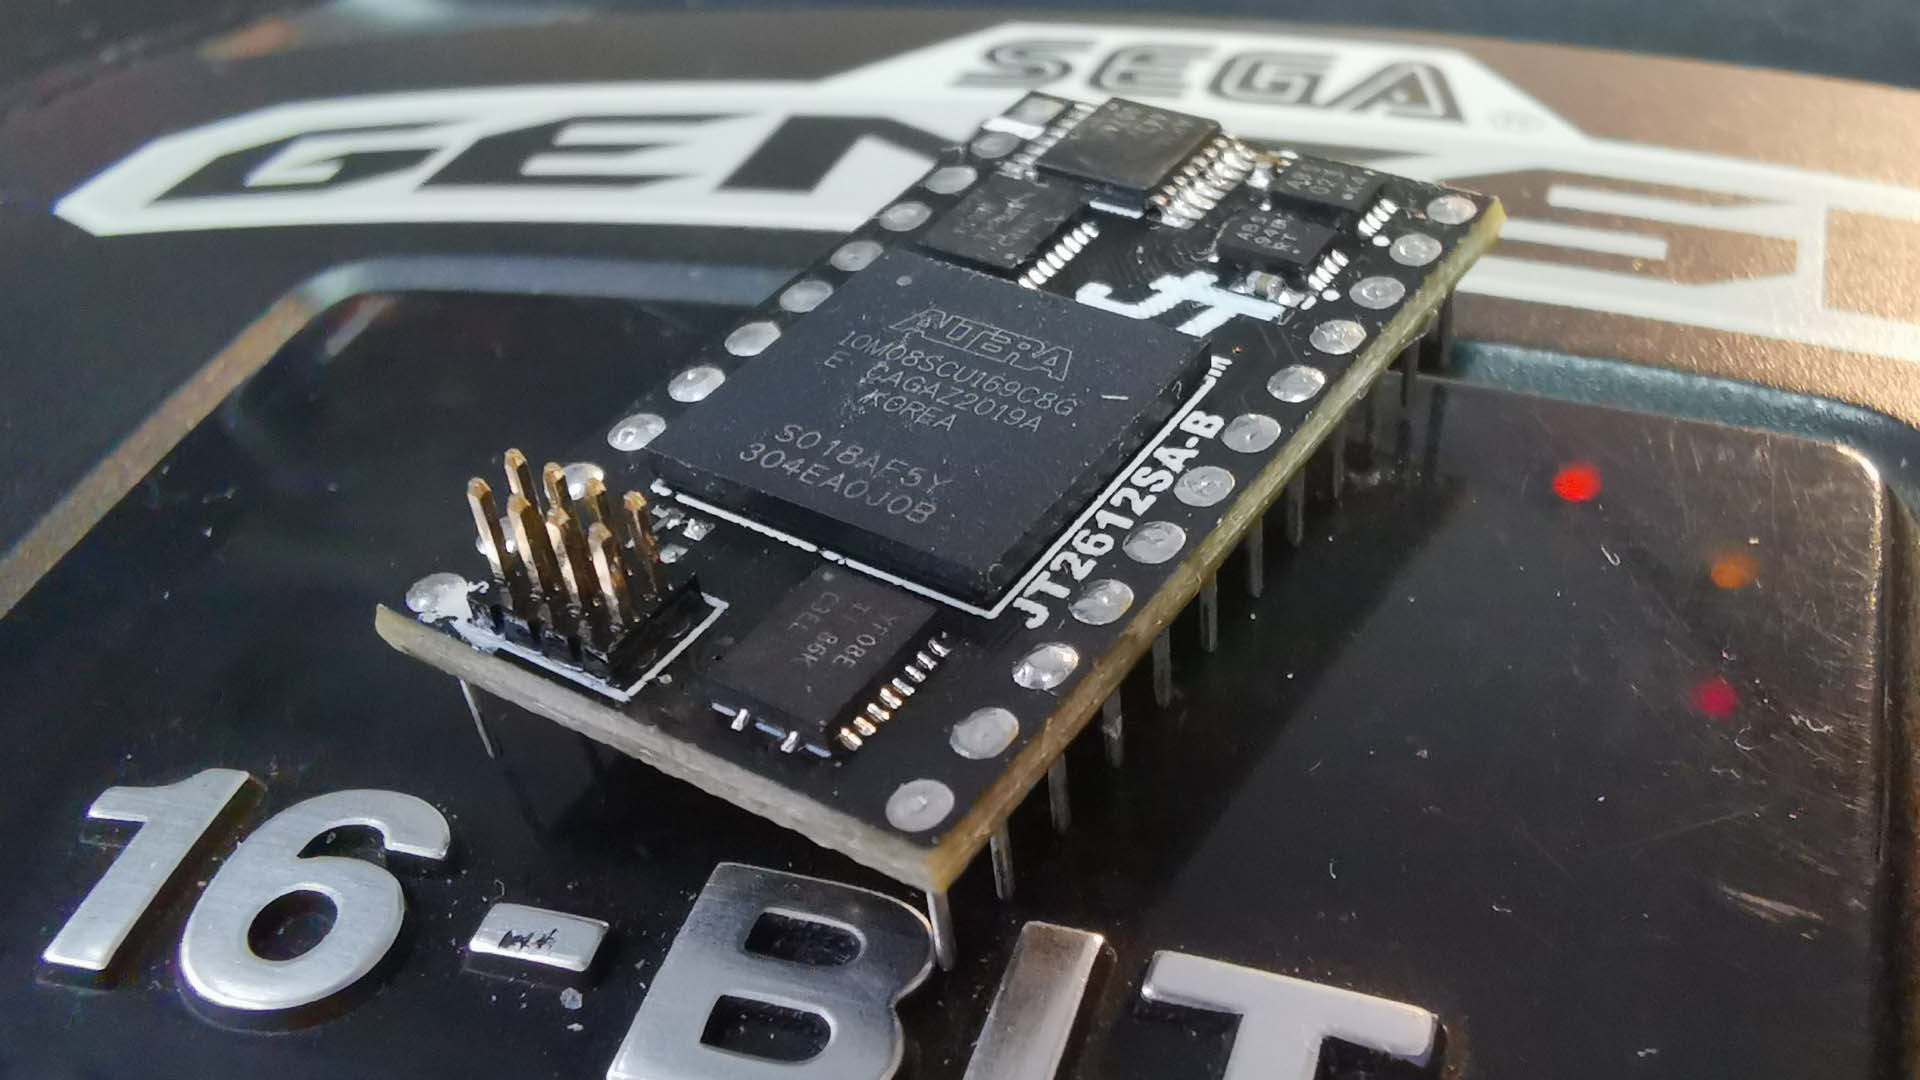 FPGA-Based YM2612 Replacement